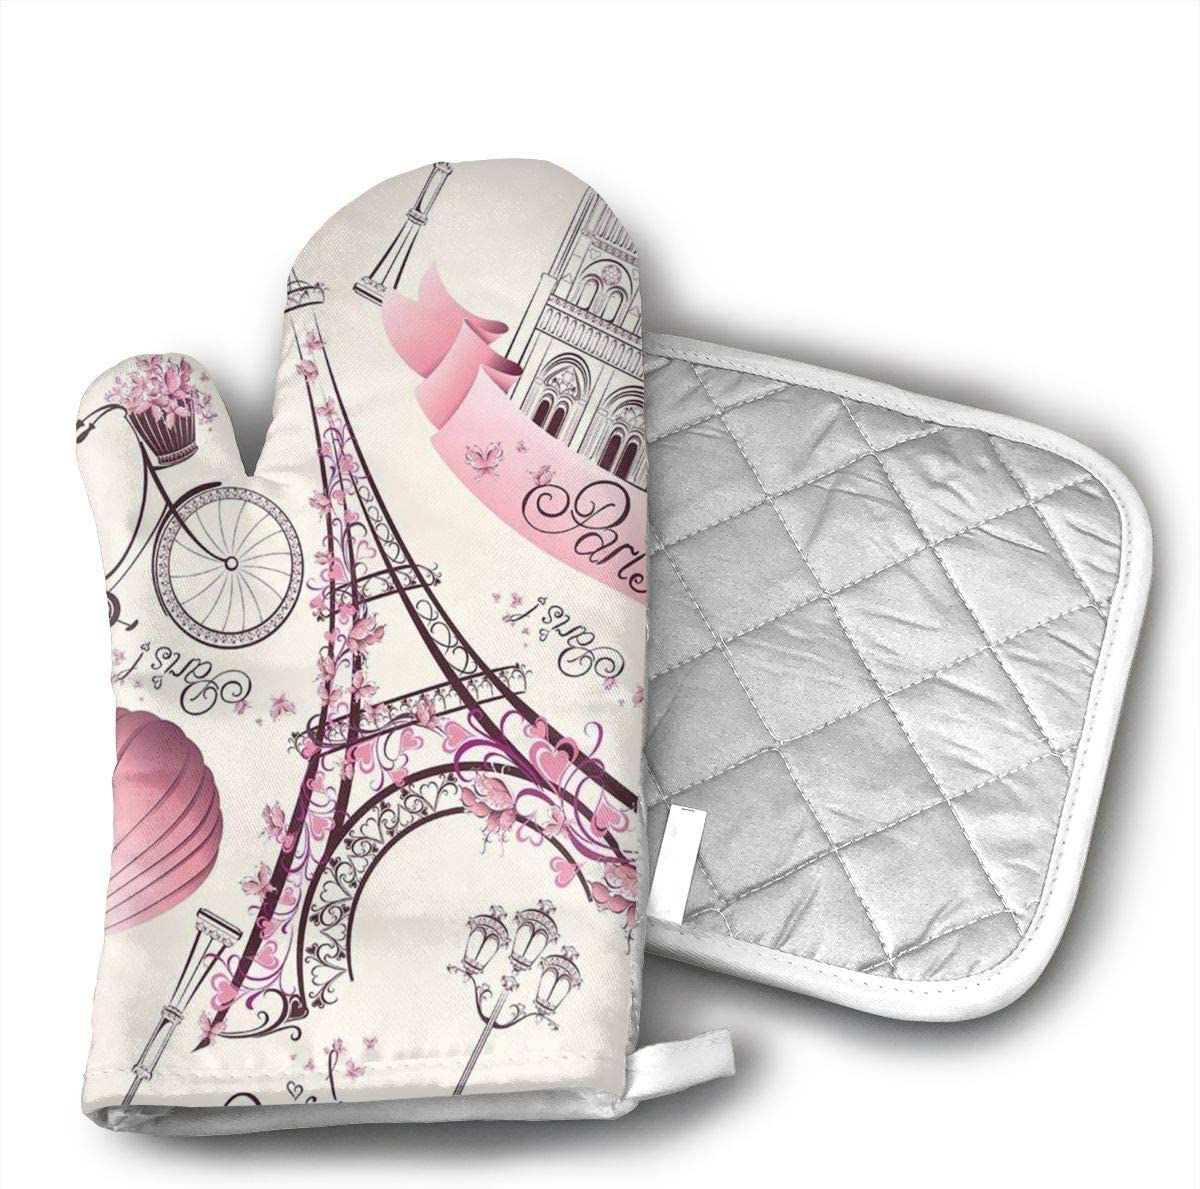 UYRHFS Pink Paris Eiffel Tower Oven Mitts and Pot Holder Kitchen Set with, Heat Resistant, Oven Gloves and Pot Holders 2pcs Set for BBQ Cooking Baking